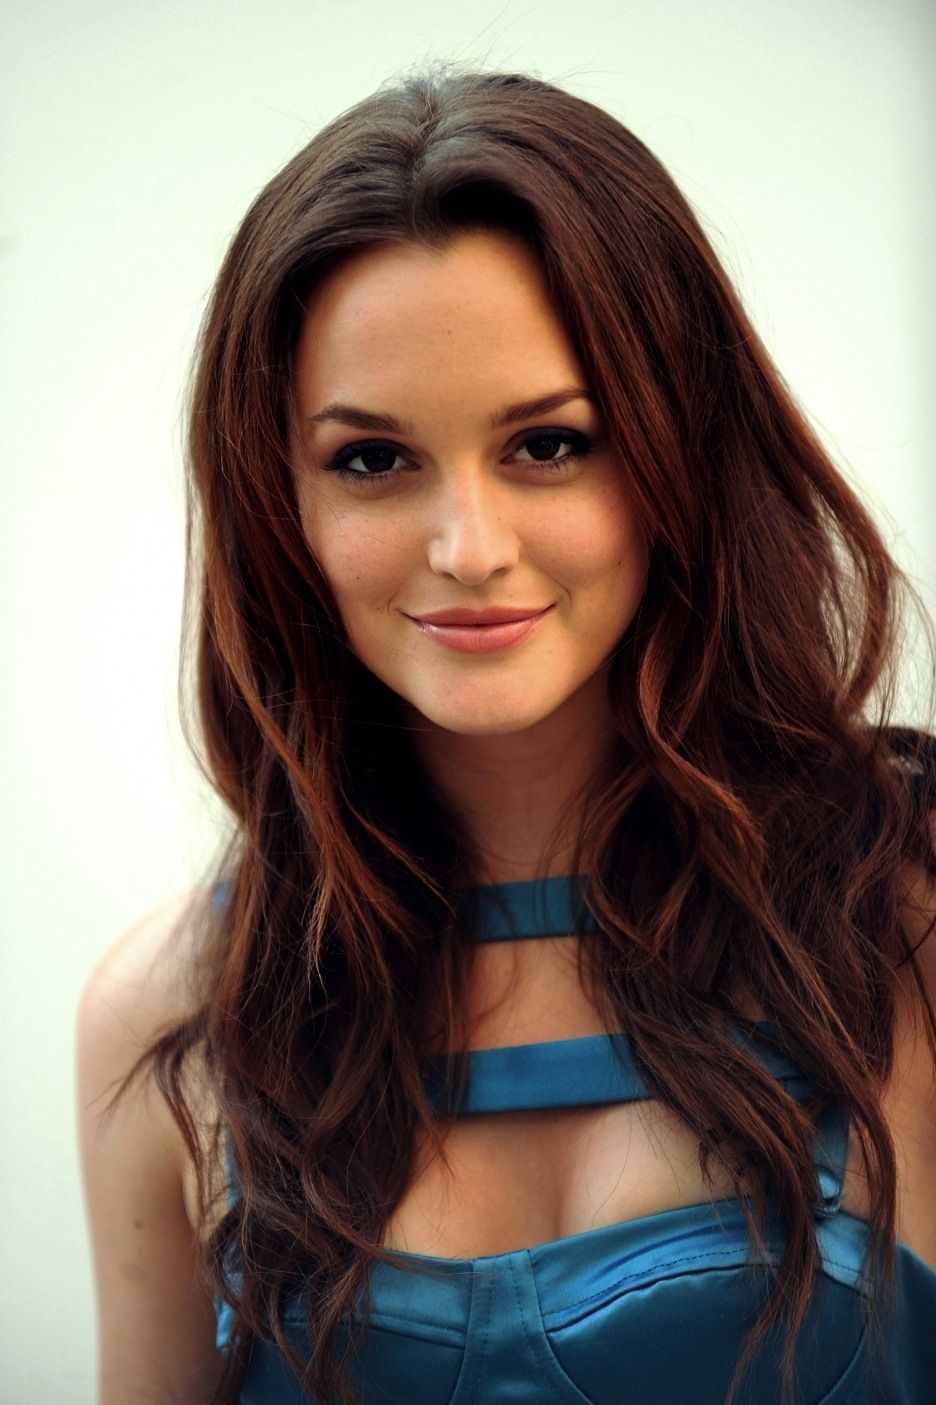 Top 27 leighton meester pretty hairstyles leighton meester top 27 leighton meester pretty hairstyles baditri Gallery